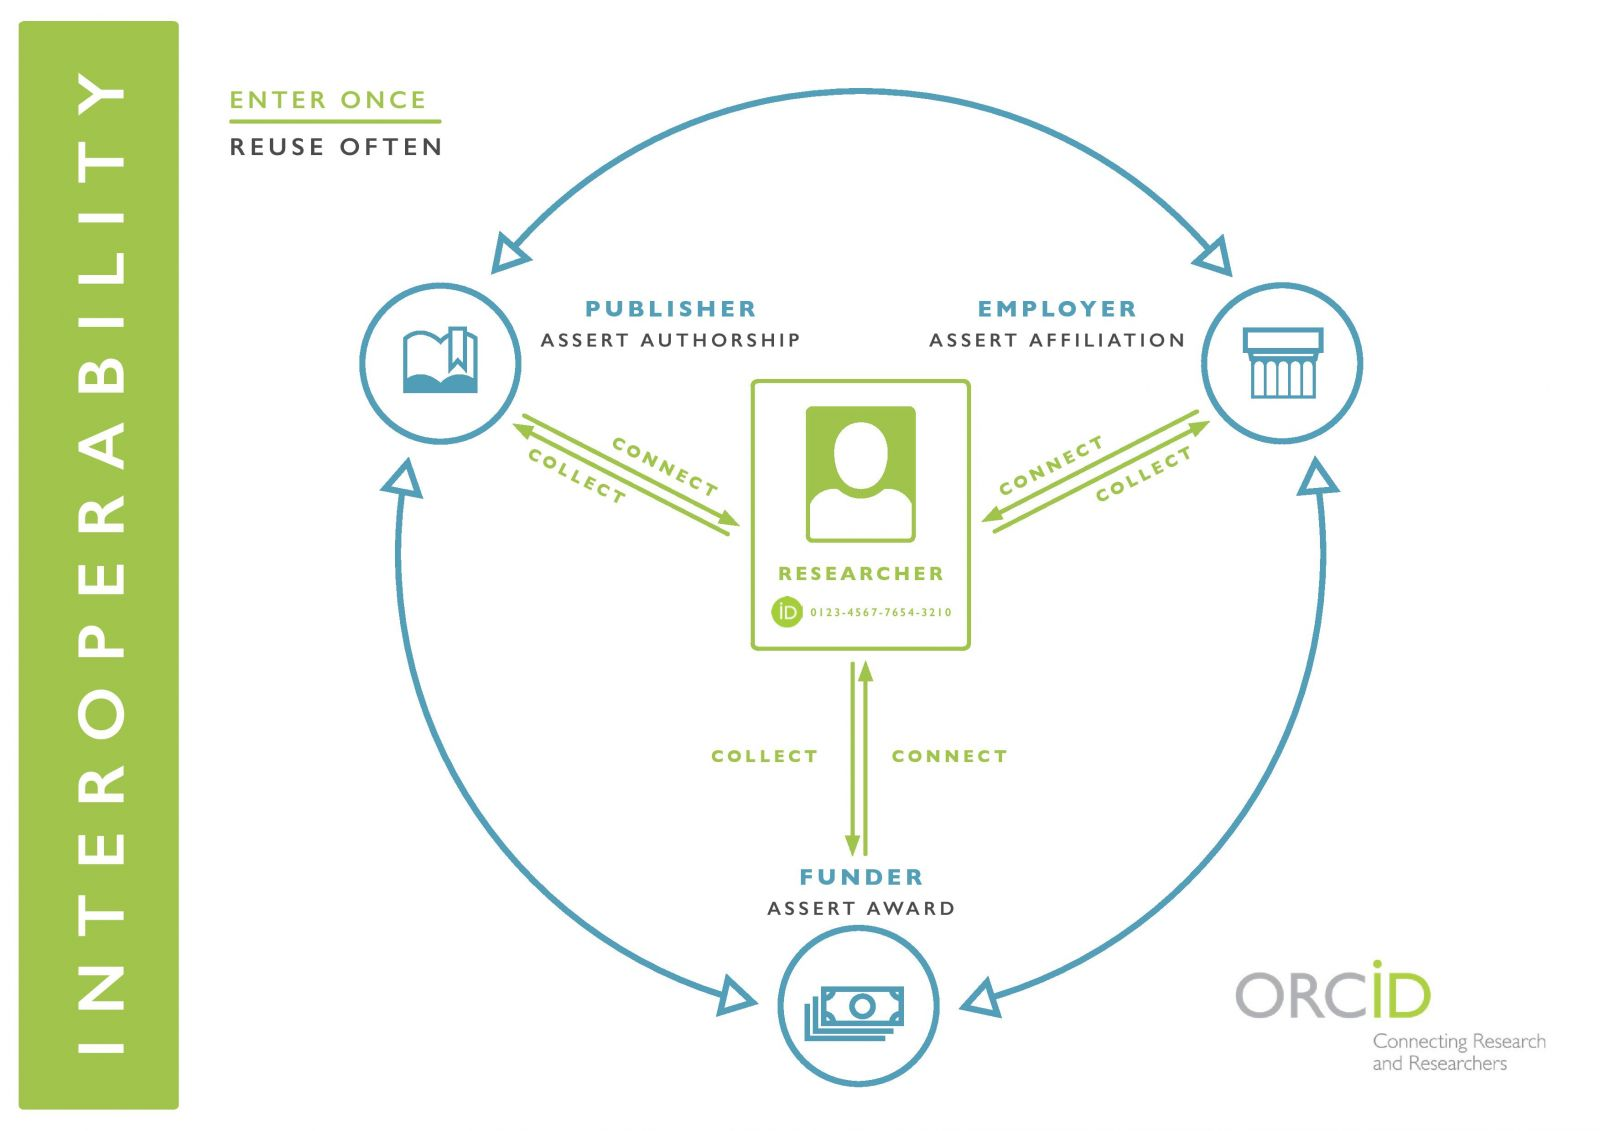 Diagram of ORCID interoperability